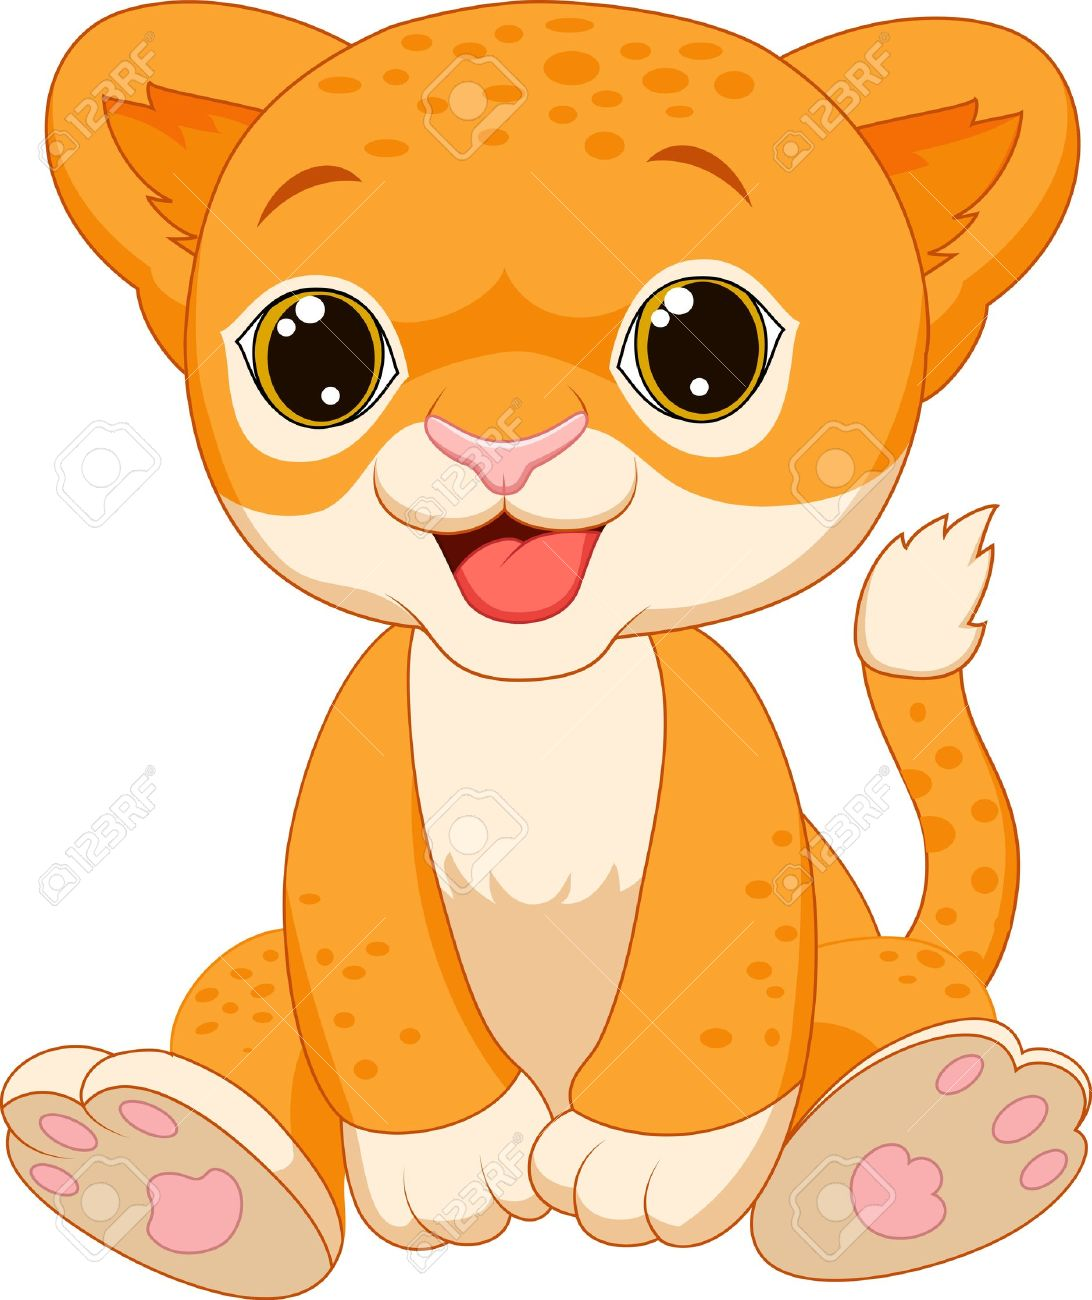 cute baby lion clipart - Clipground for Clipart Leopard Cute  lp00lyp